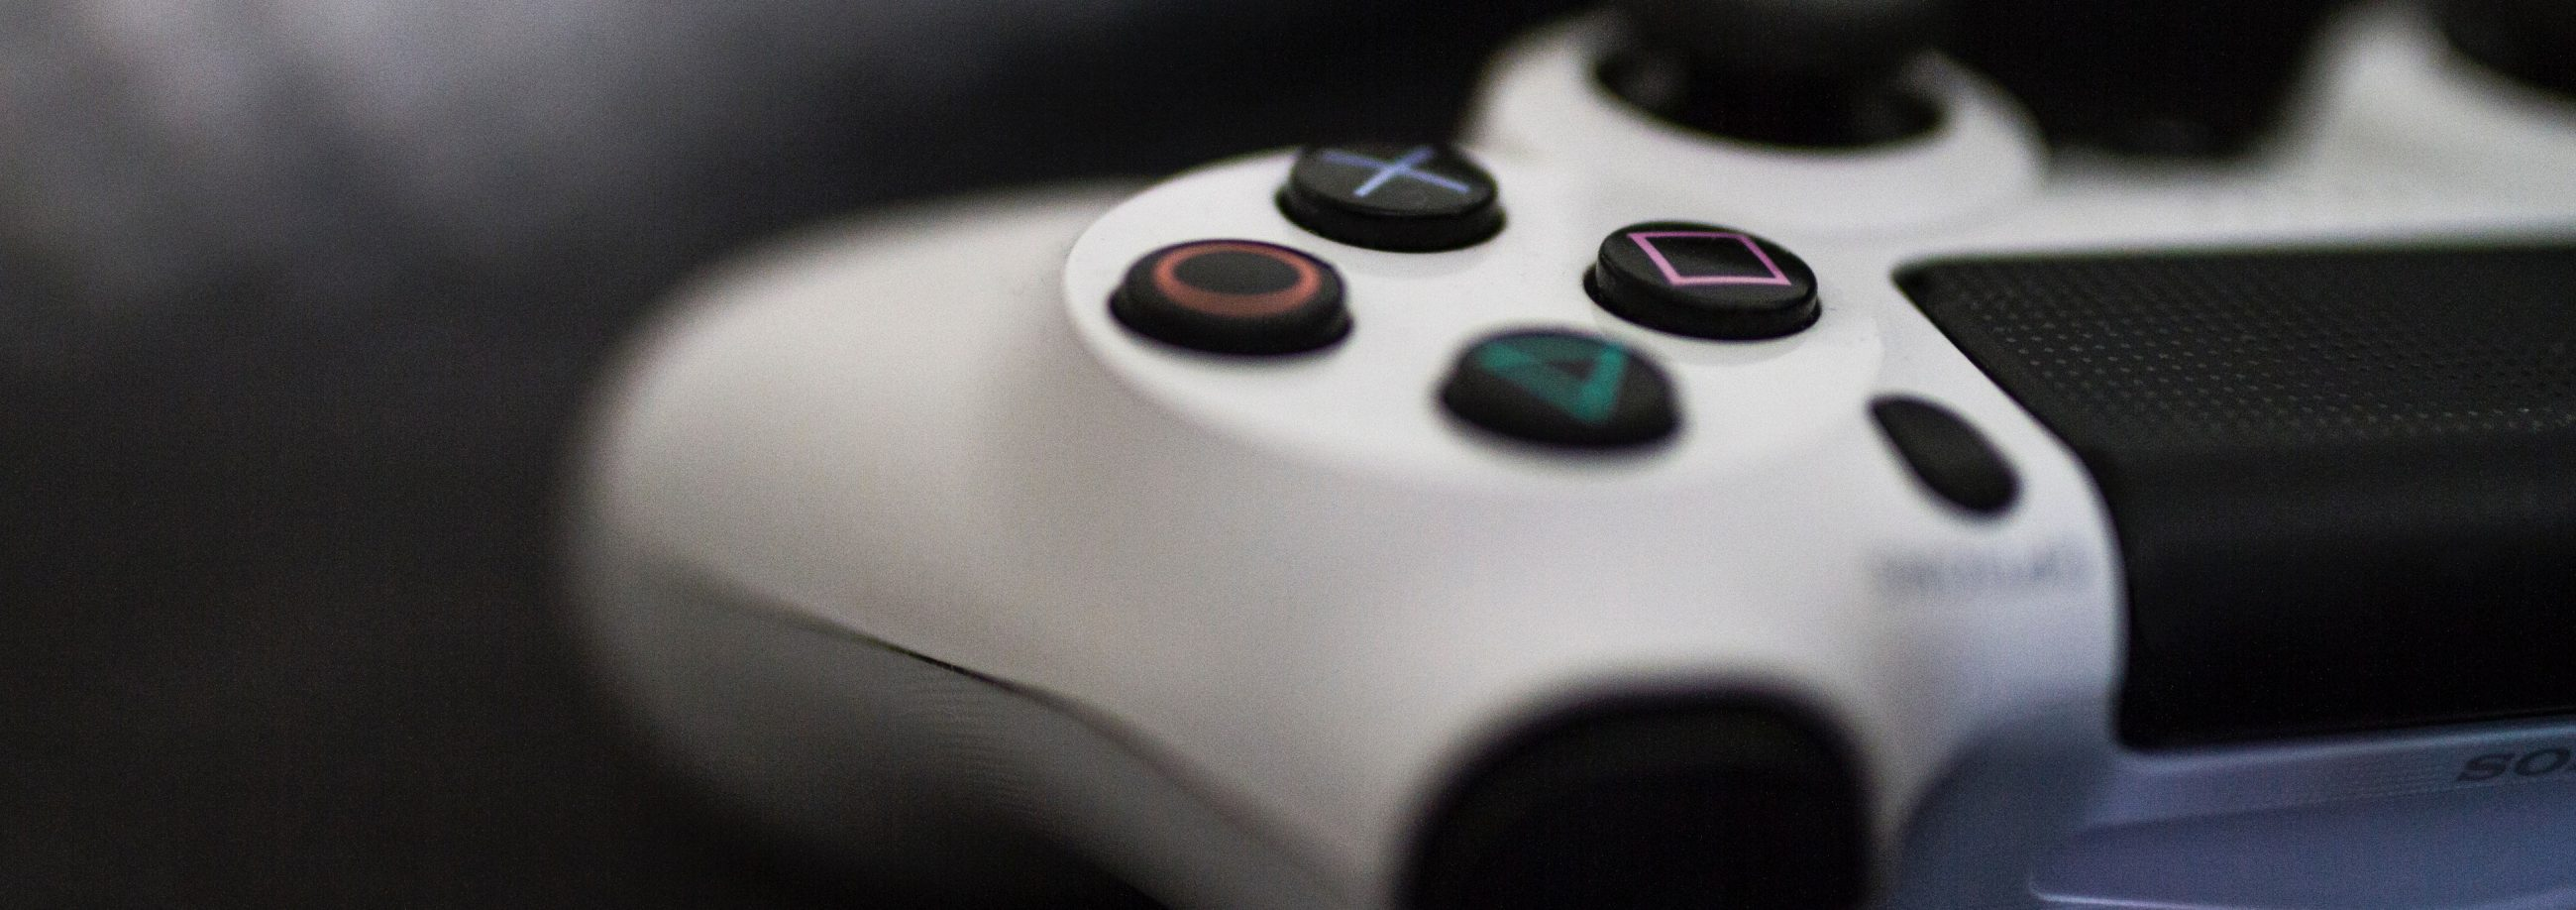 Ps3 Only Alles Over De Playstation 3